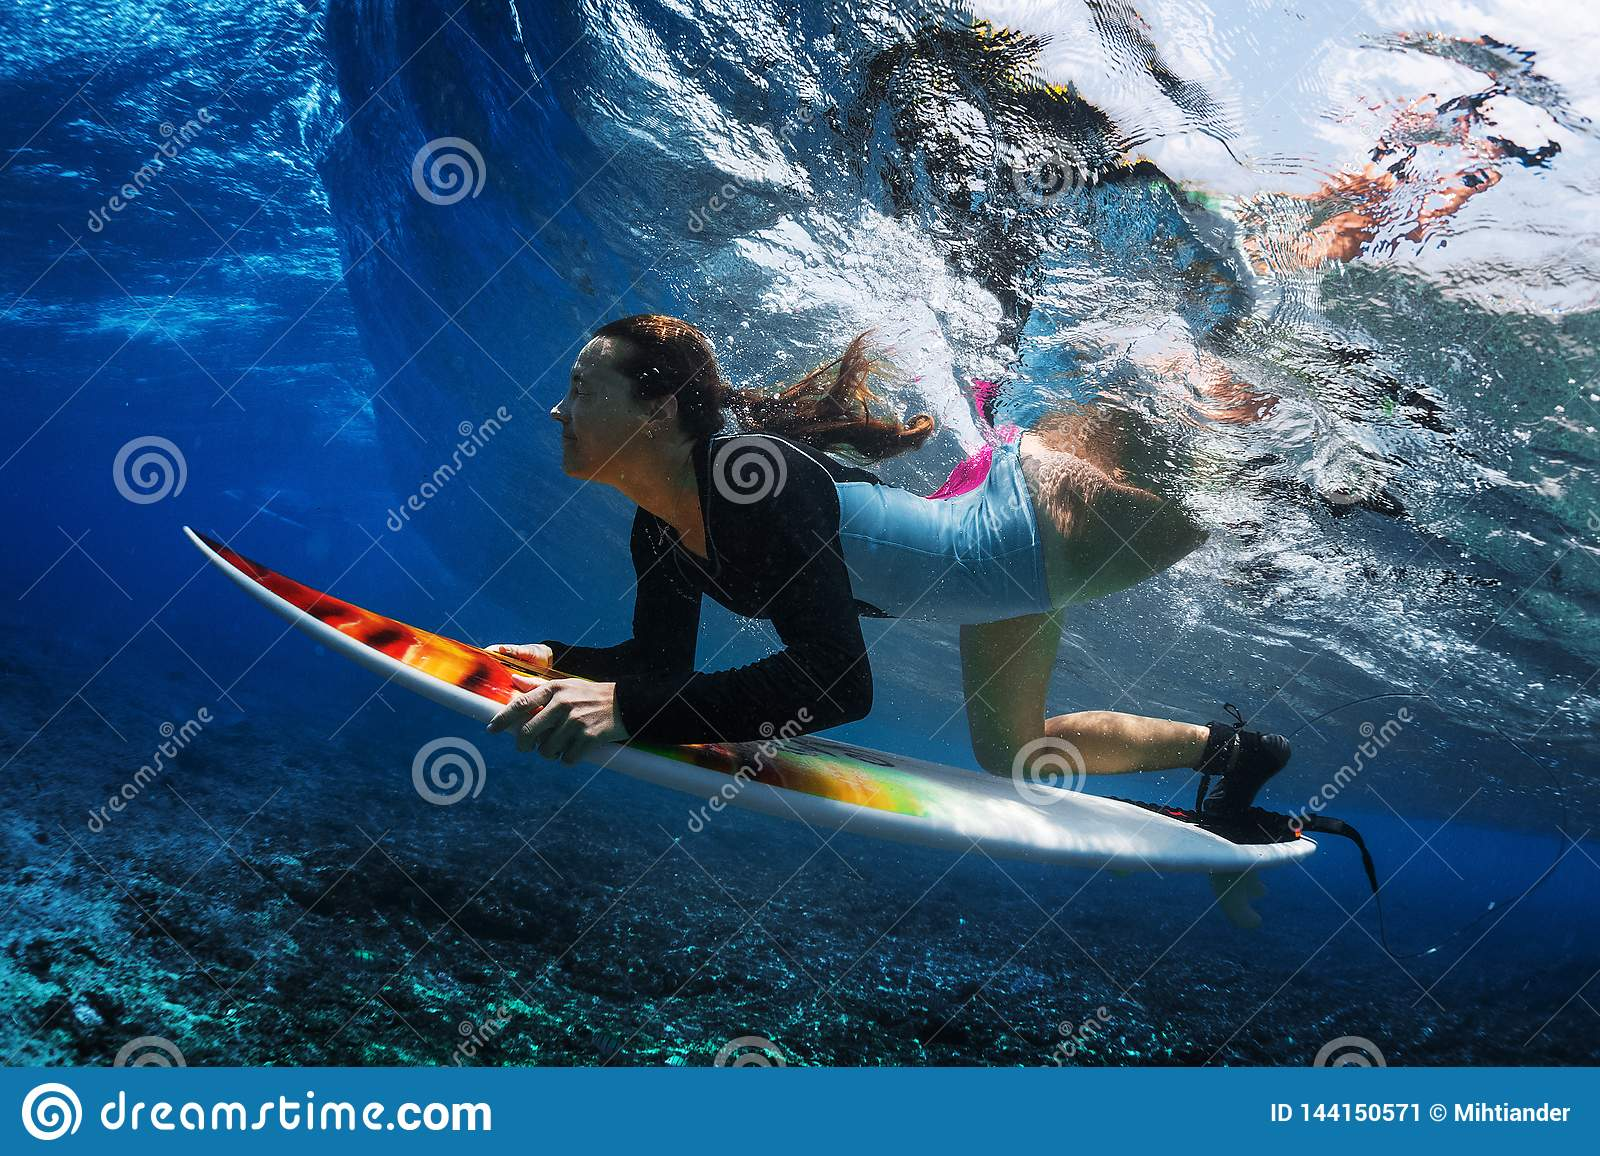 Underwater shot of the young woman surfer